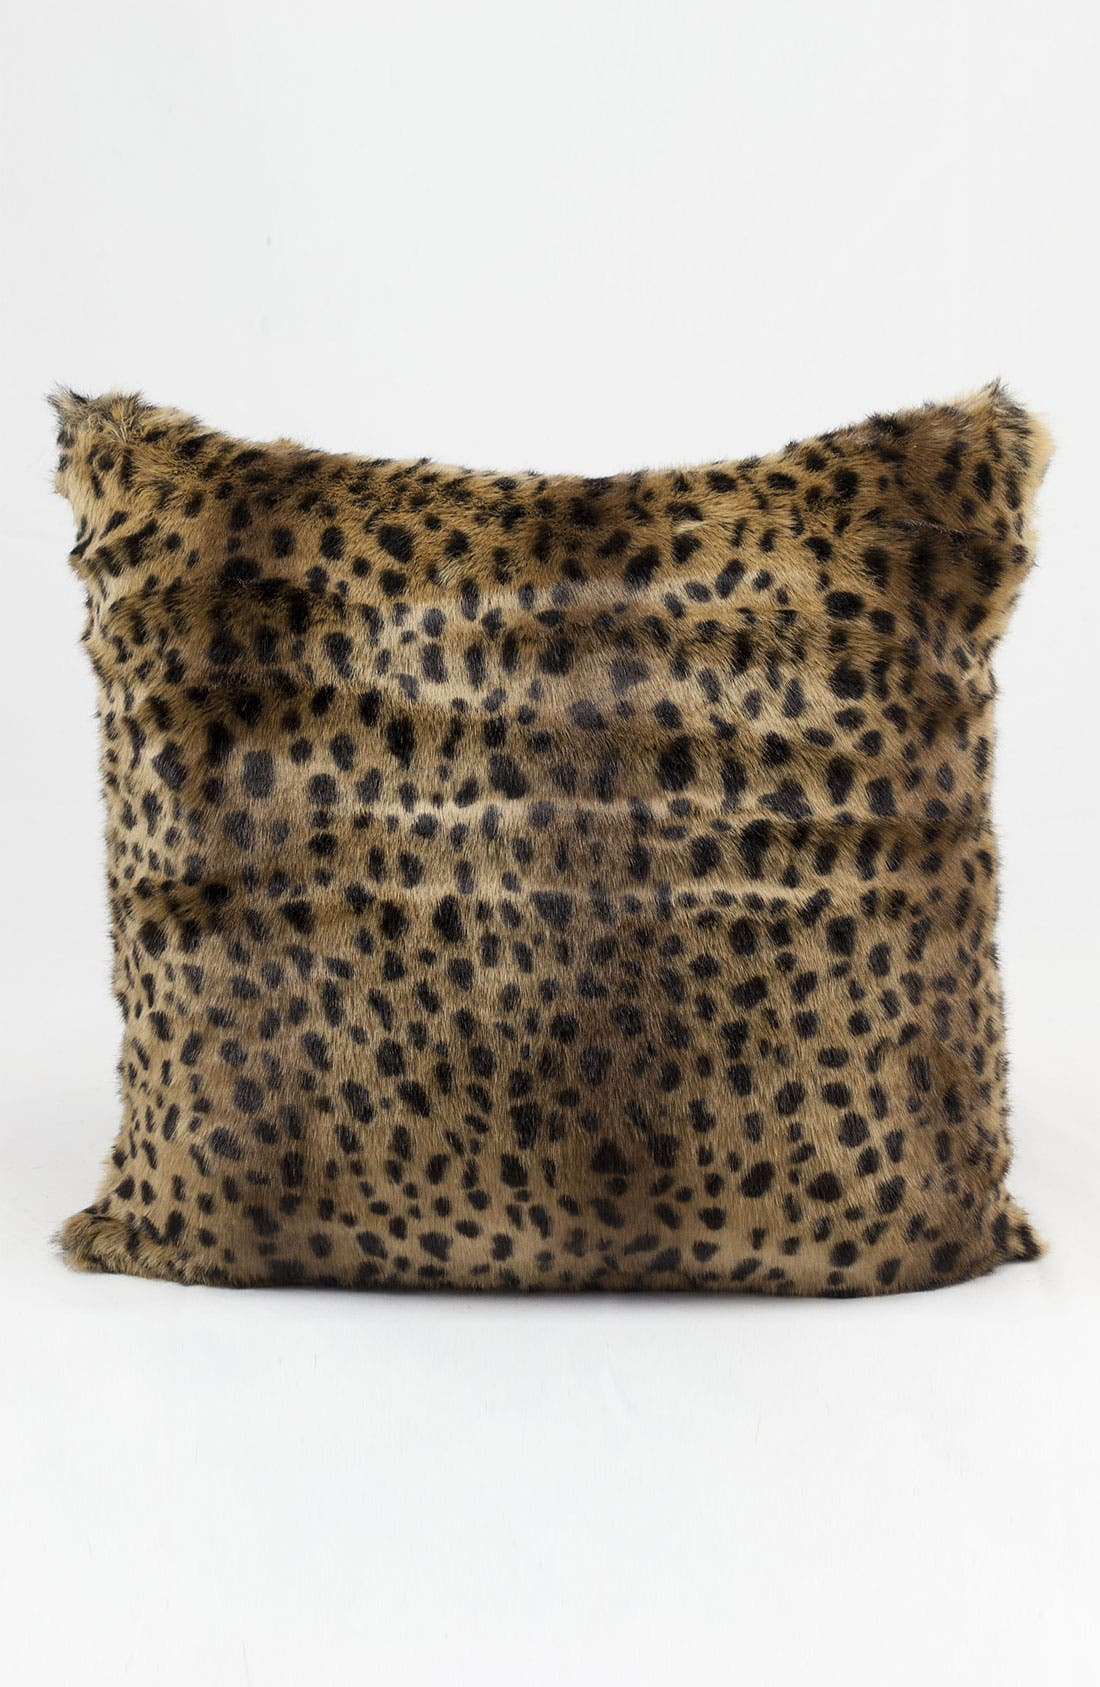 Alternate Image 1 Selected - Mina Victory 'Golden Leopard' Pillow